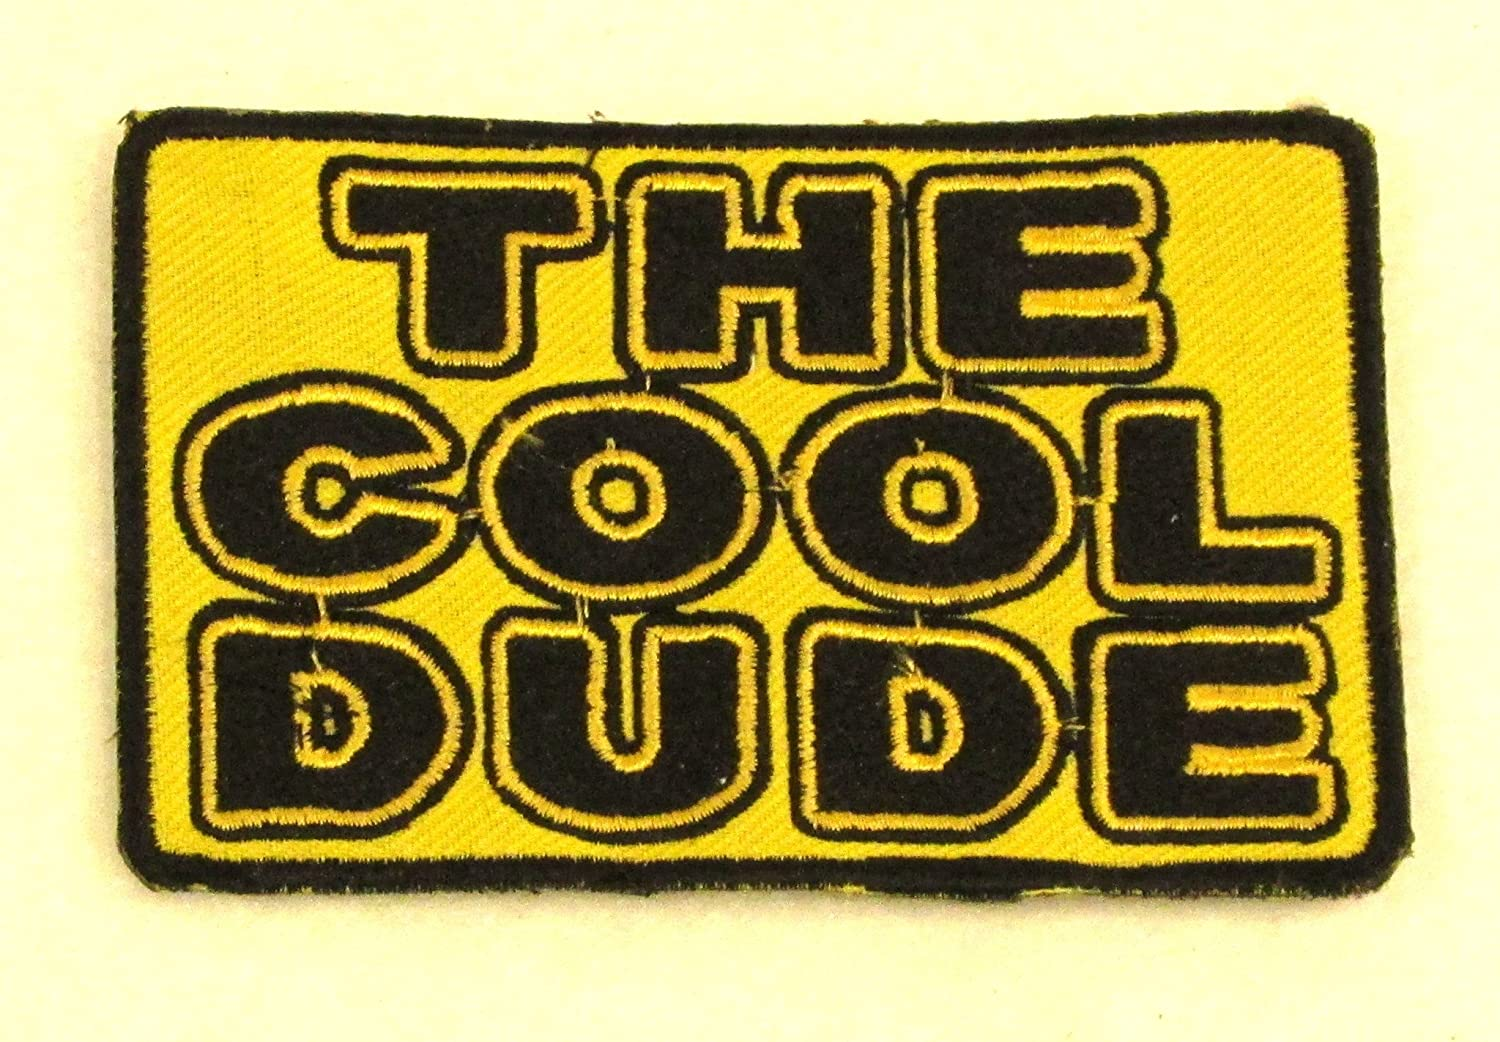 THE COOL DUDE Black on Yellow Iron on Small Patch for Biker Vest SB842